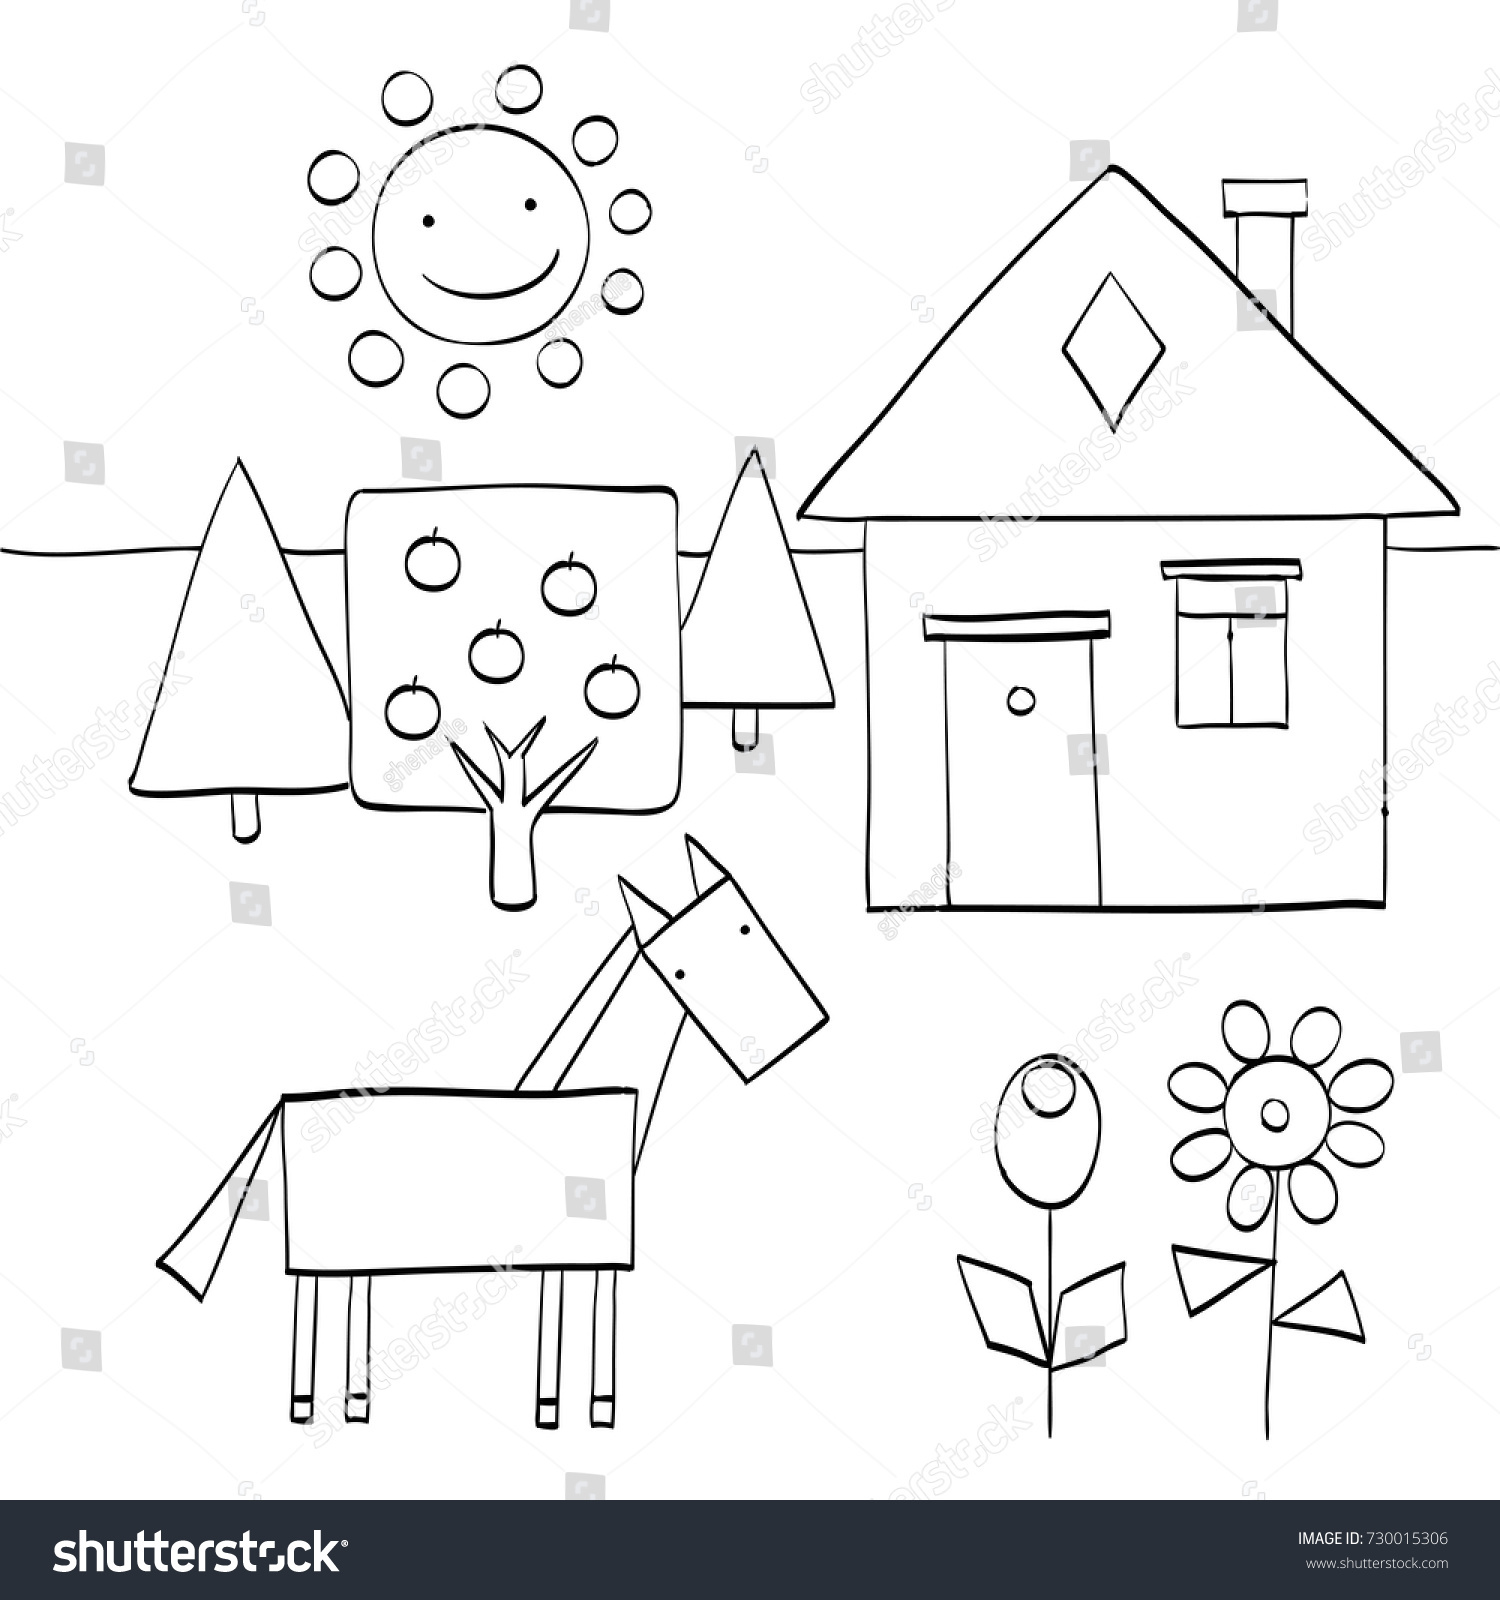 Coloring Page Children Find Geometric Shapes Stock Vector